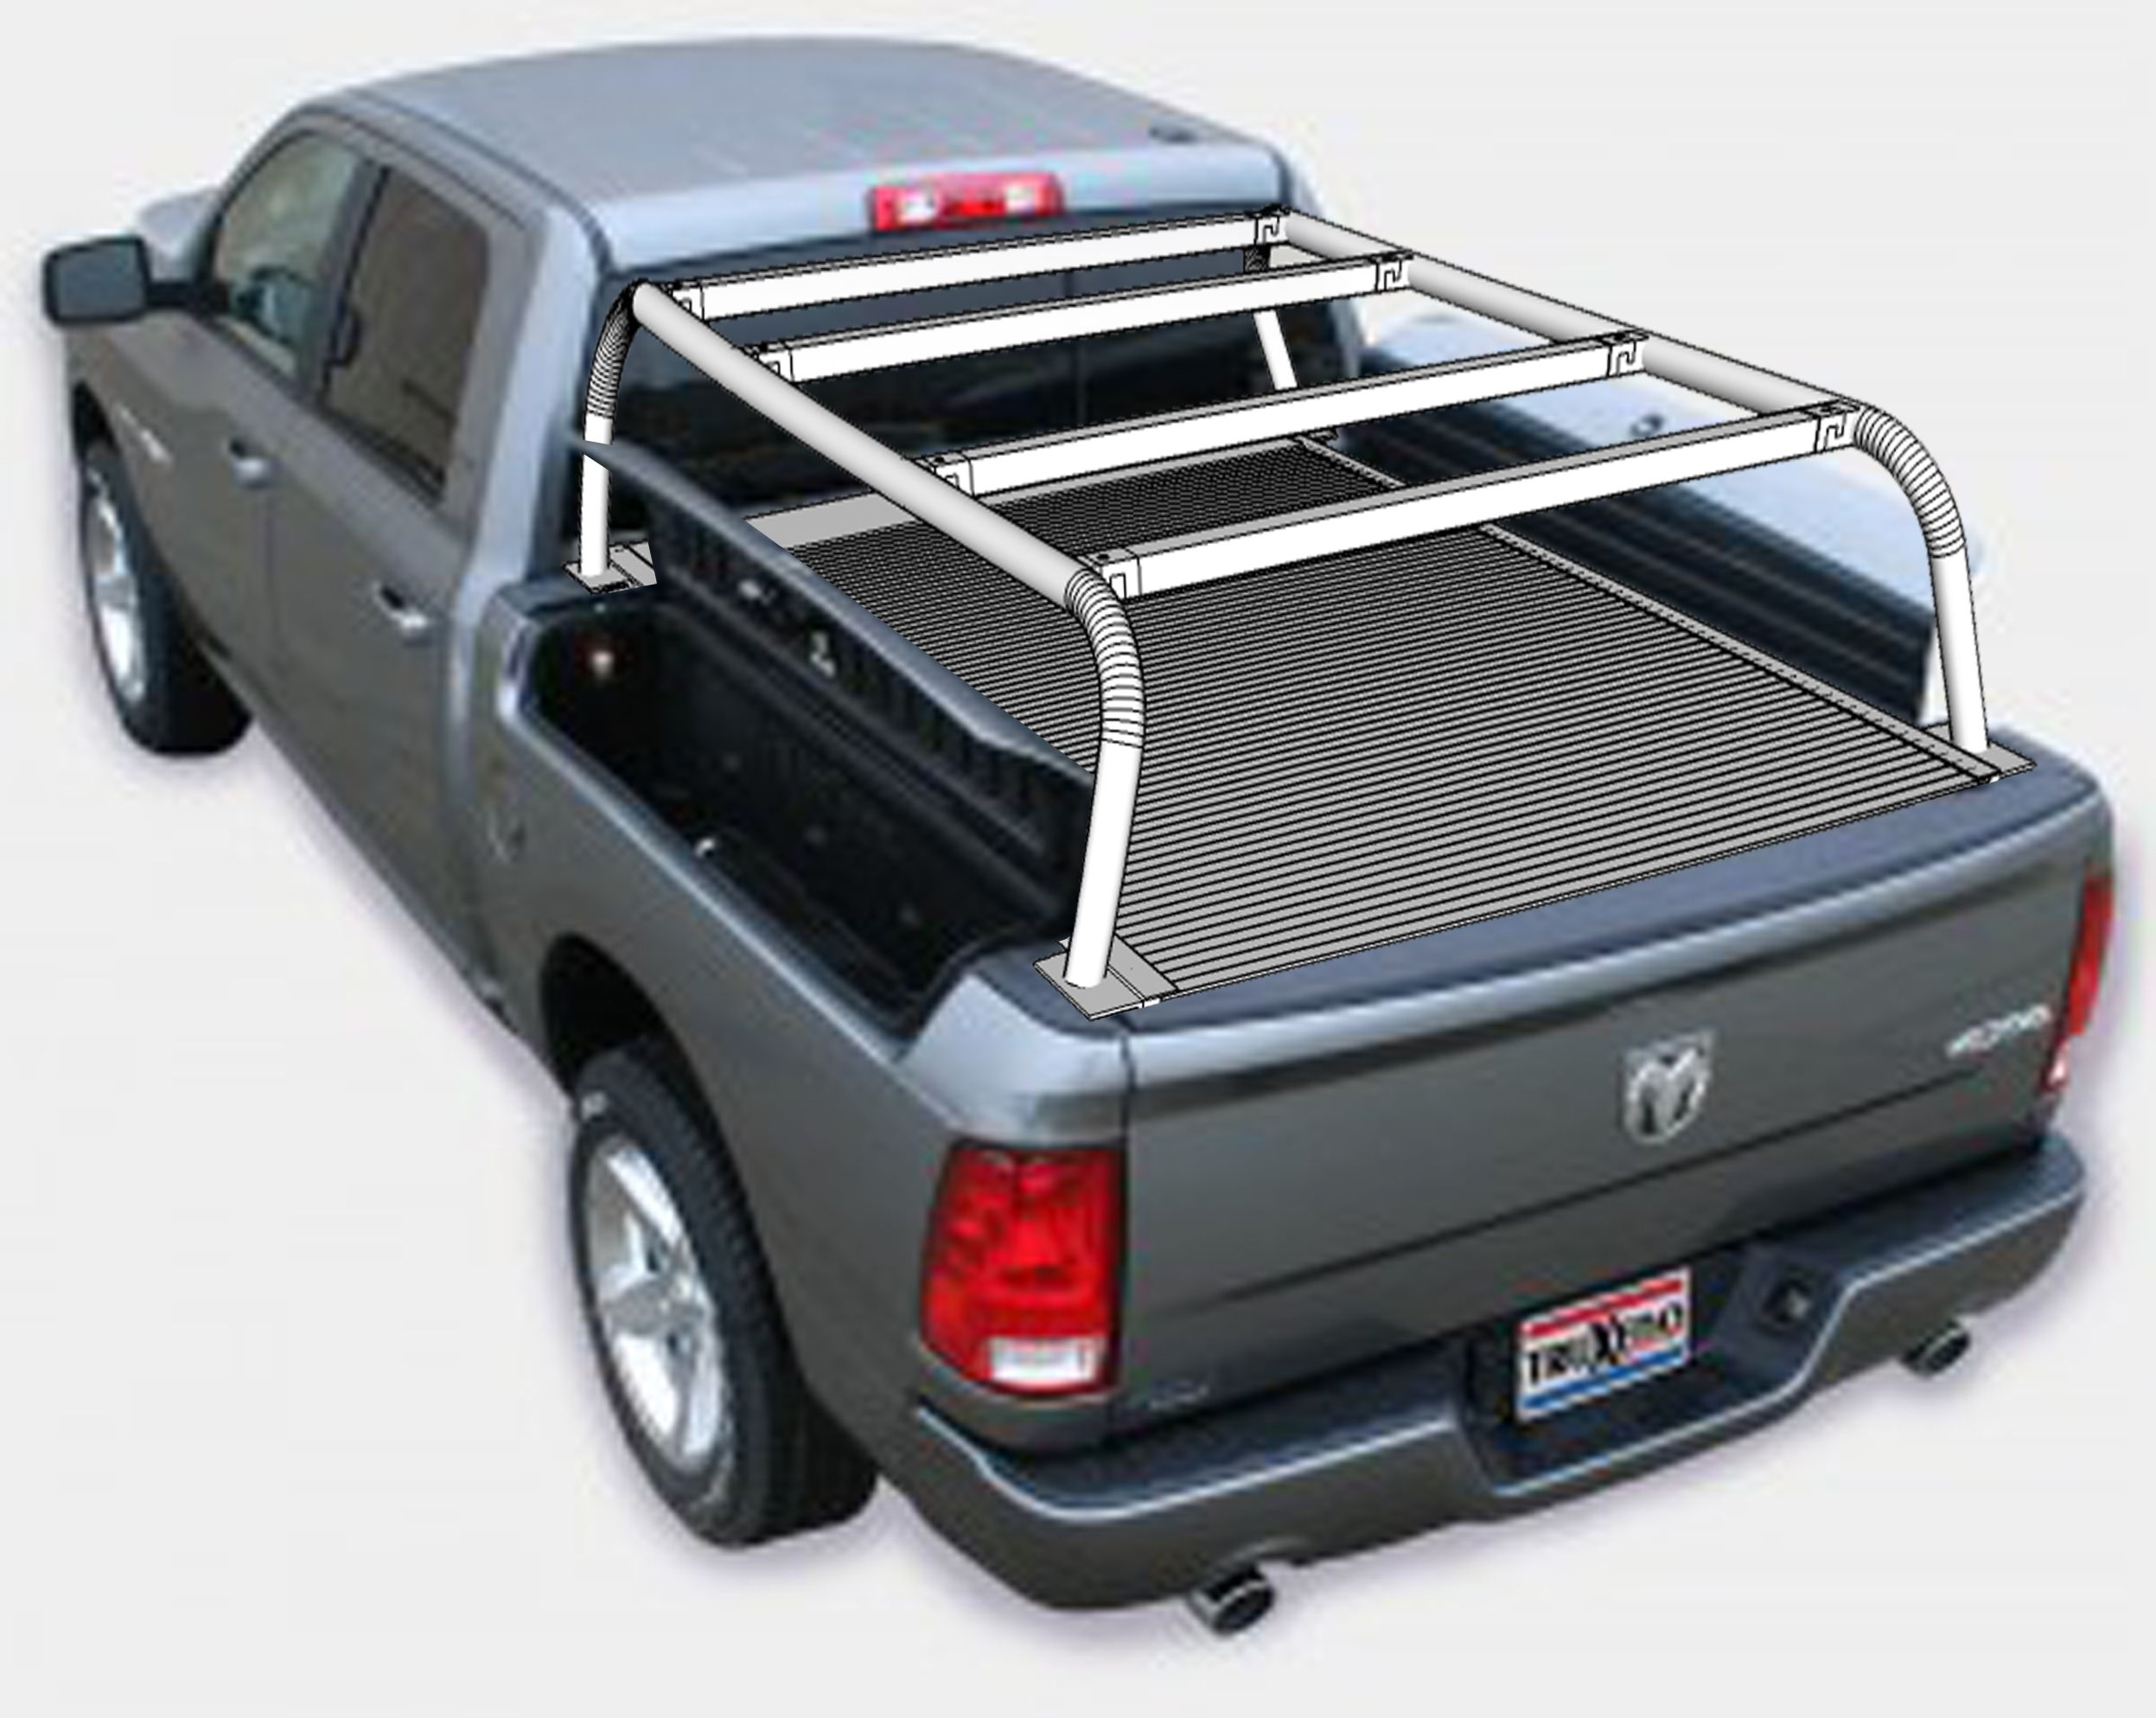 Expedition Truck Bed Rack, Roof Top Tent Rack